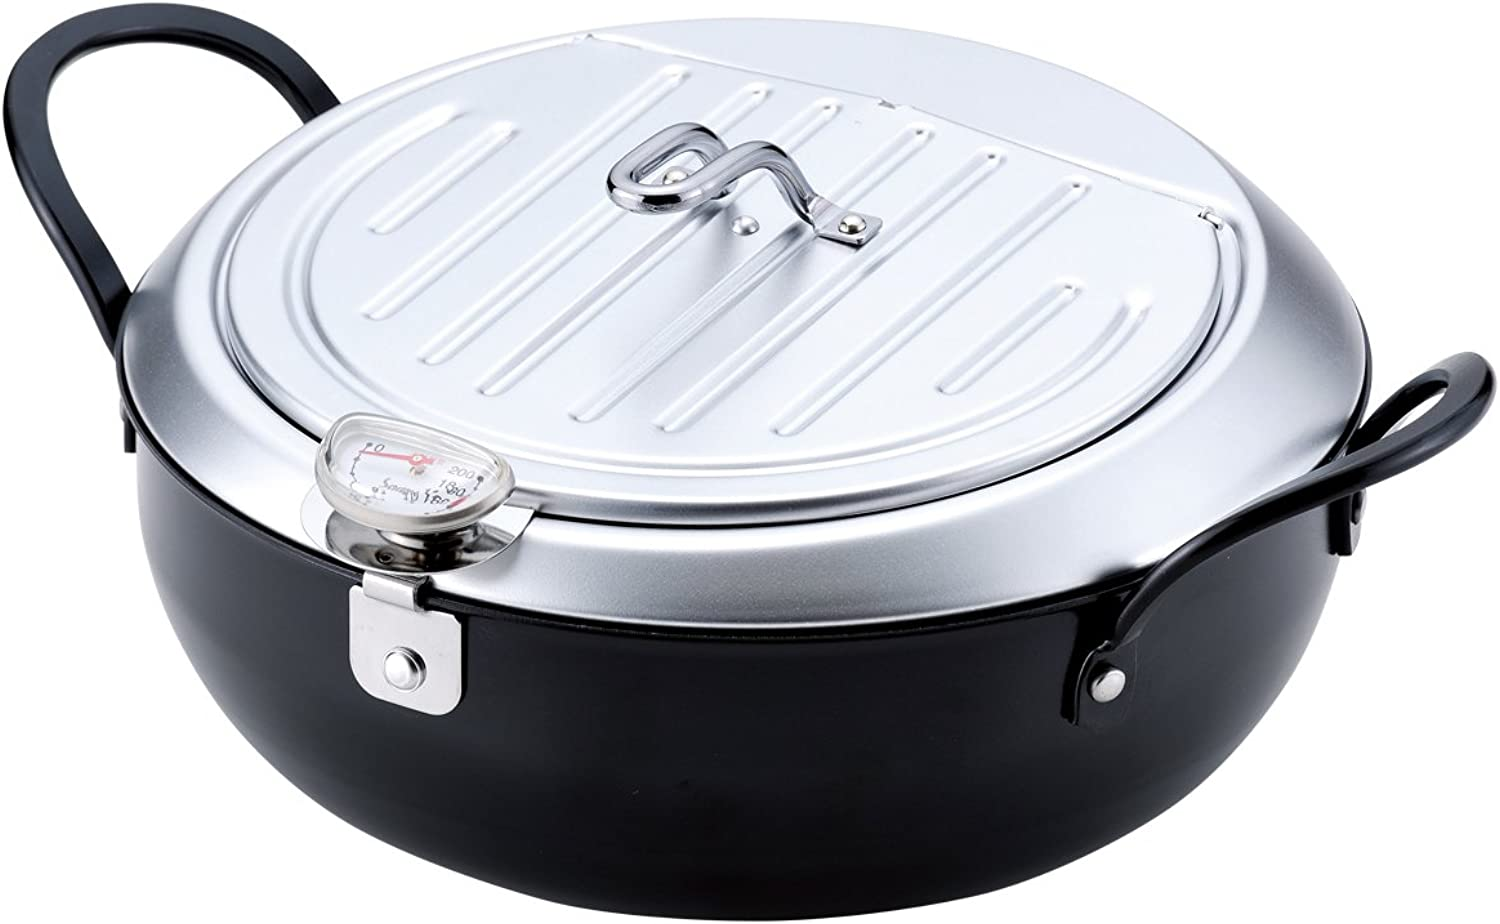 WAHEI FREIZ Iron Tempura Deep Fryer with a lid, dia. 24cm (9.4 in.), IH-compatible and made in Japan, TM-9090